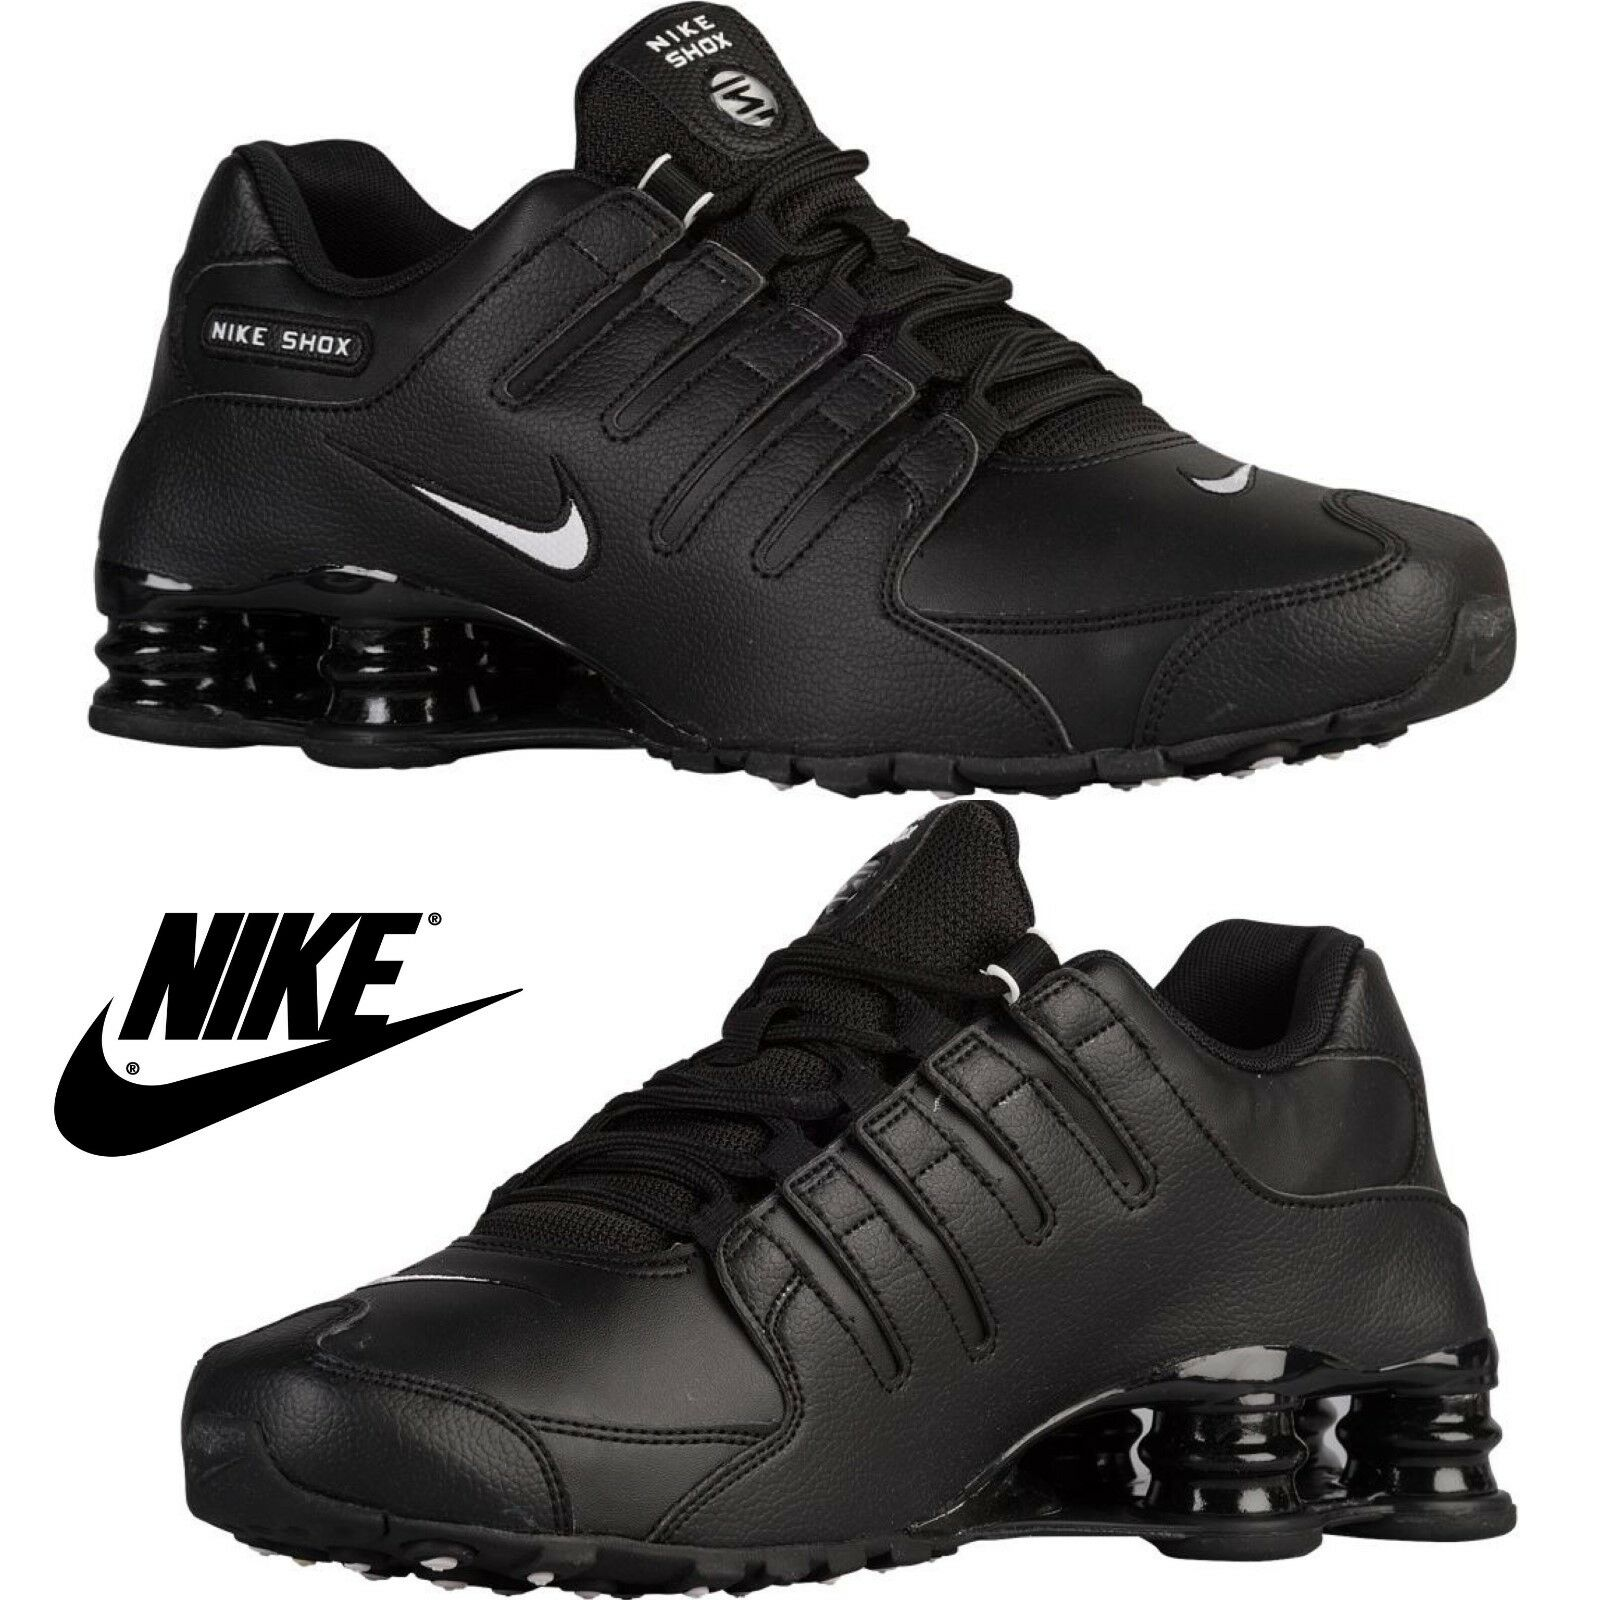 8a809 b27fb  best nike running shox nz mens sneakers running nike athletic  comfort sport gym casual nib ba8fc4 33f129c78